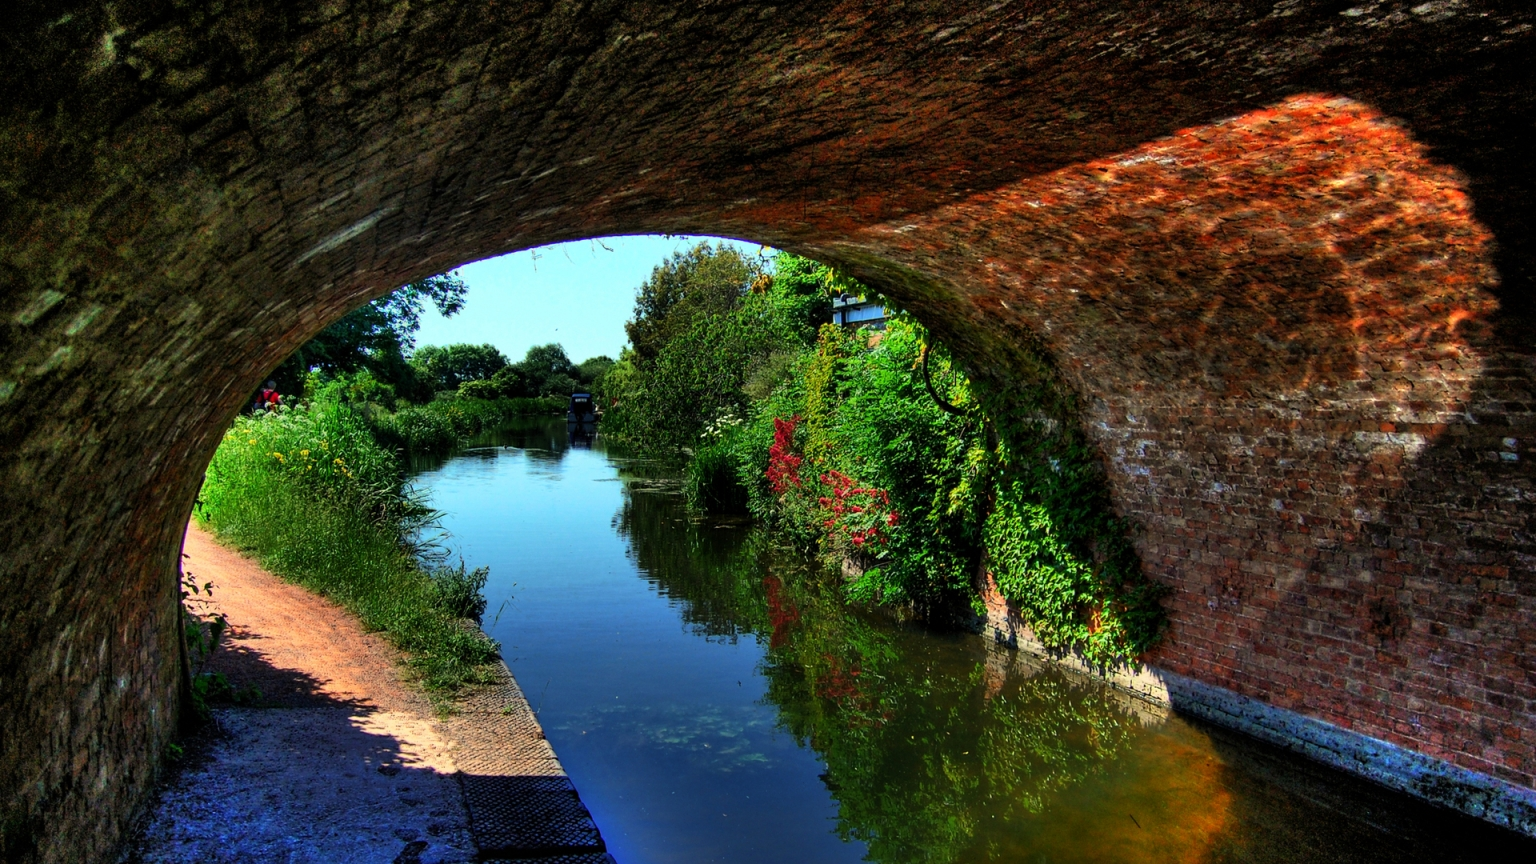 Canal Under An Arched Bridge for 1536 x 864 HDTV resolution